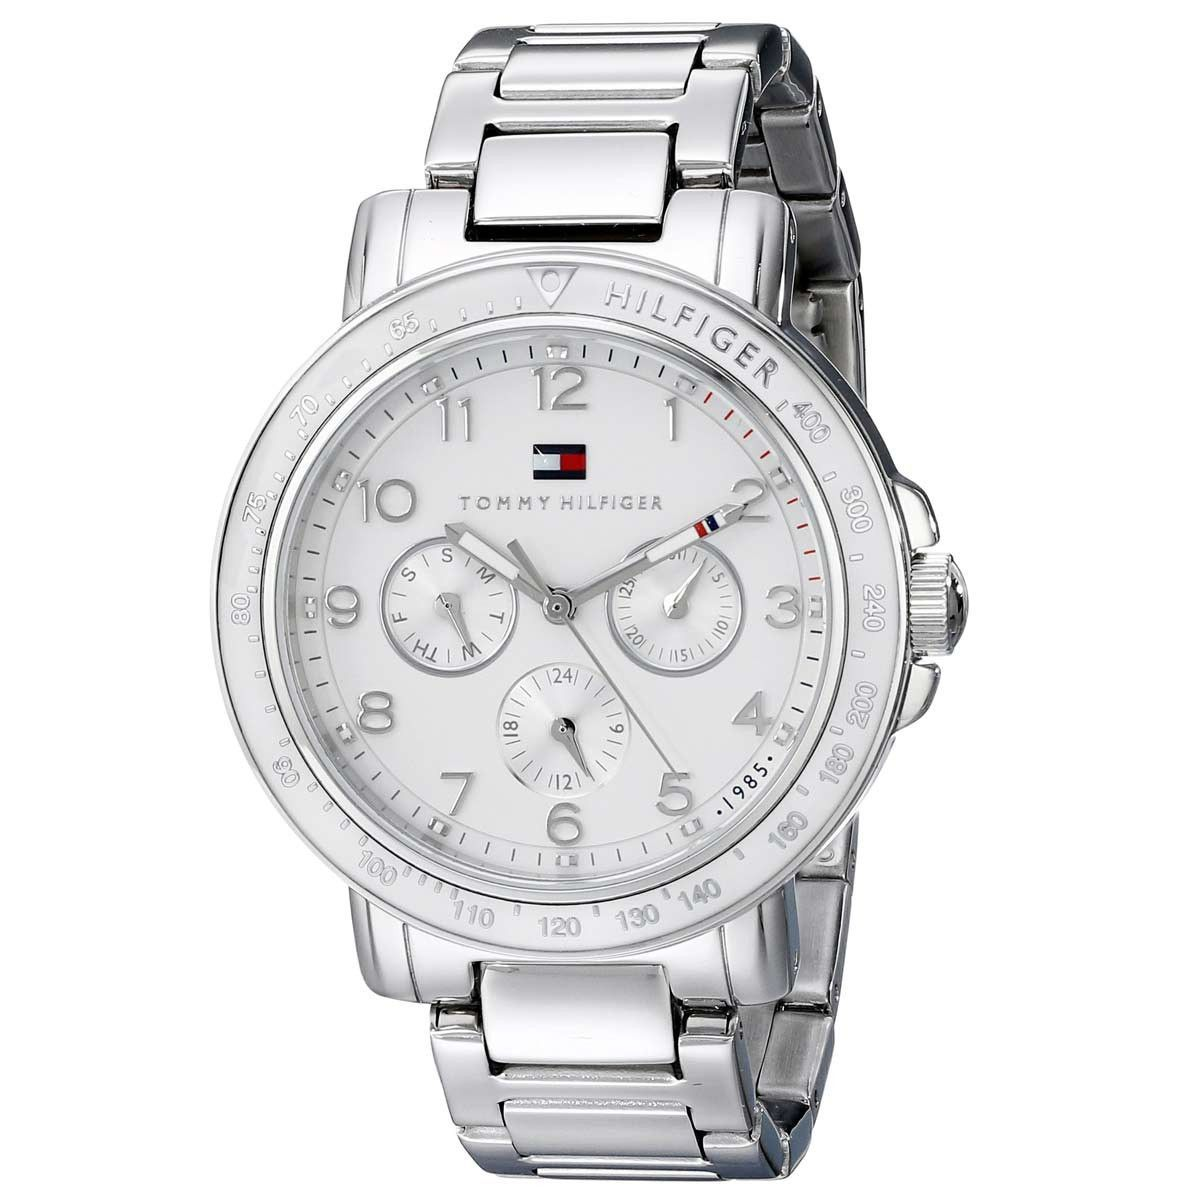 Tommy Hilfiger 1781515 Women's Sport White Dial Stainless